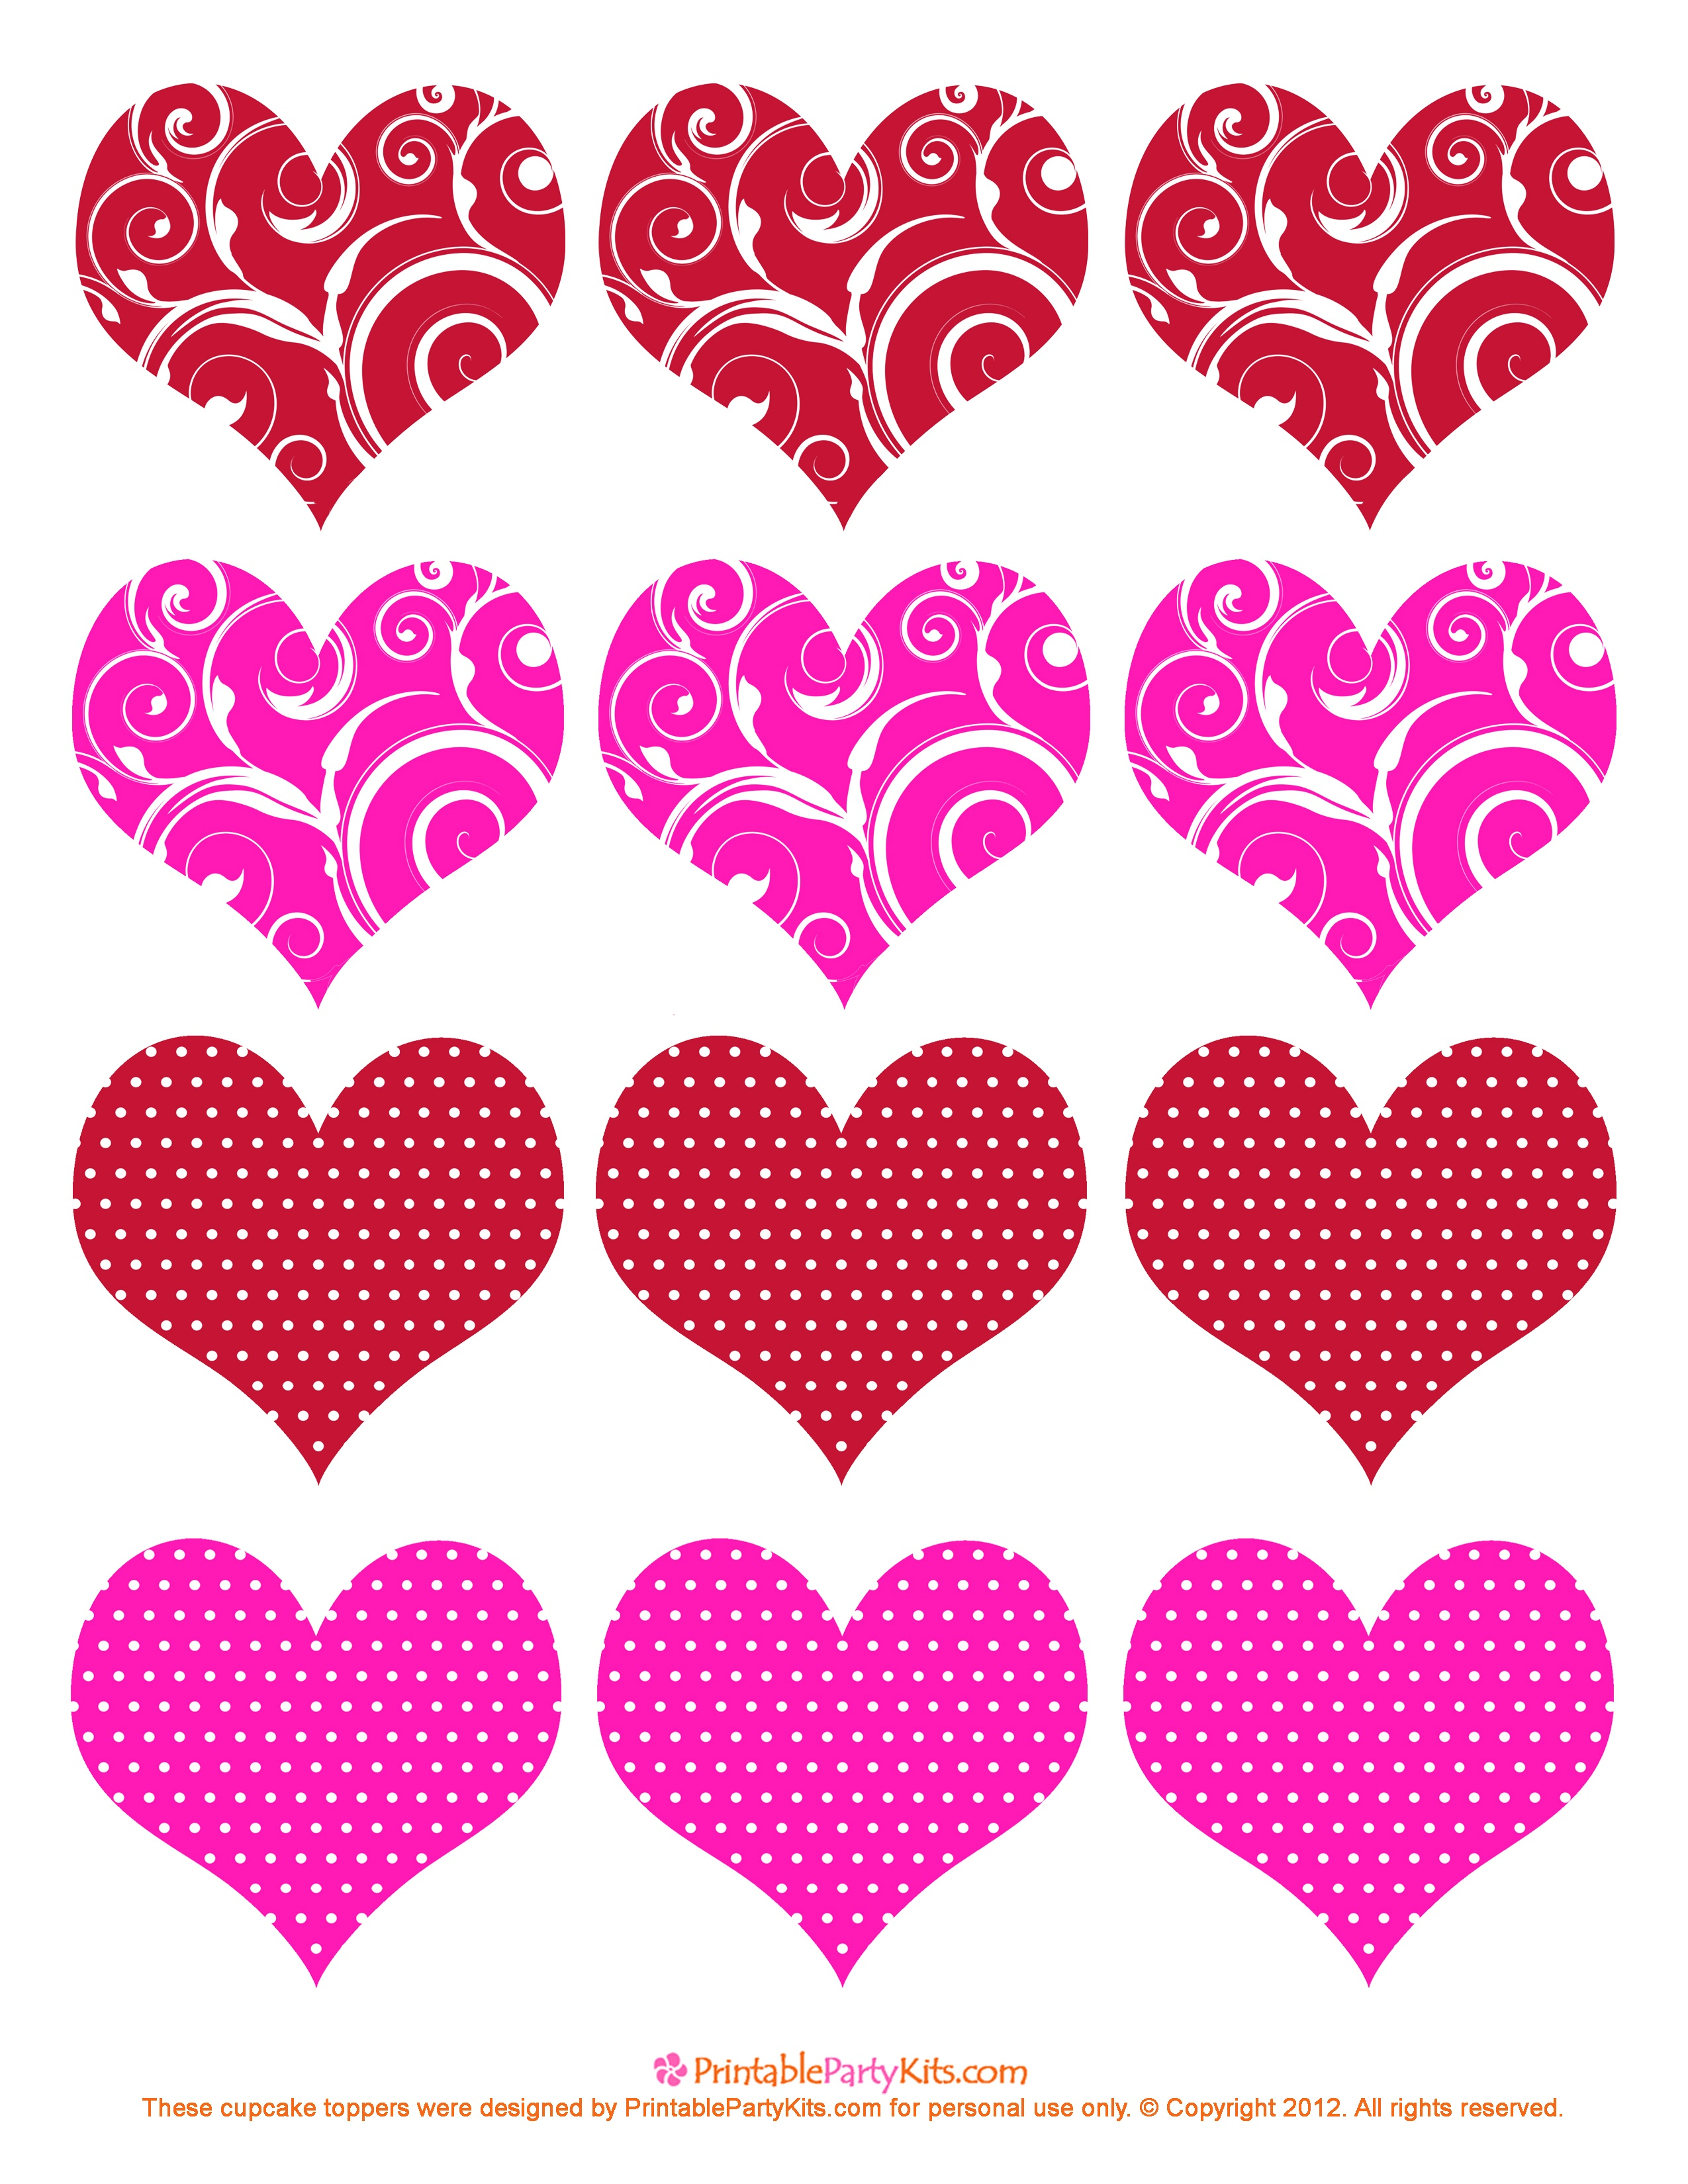 11 Valentine Heart Template Images - Free Printable Valentine Hearts - Free Printable Valentine Heart Patterns